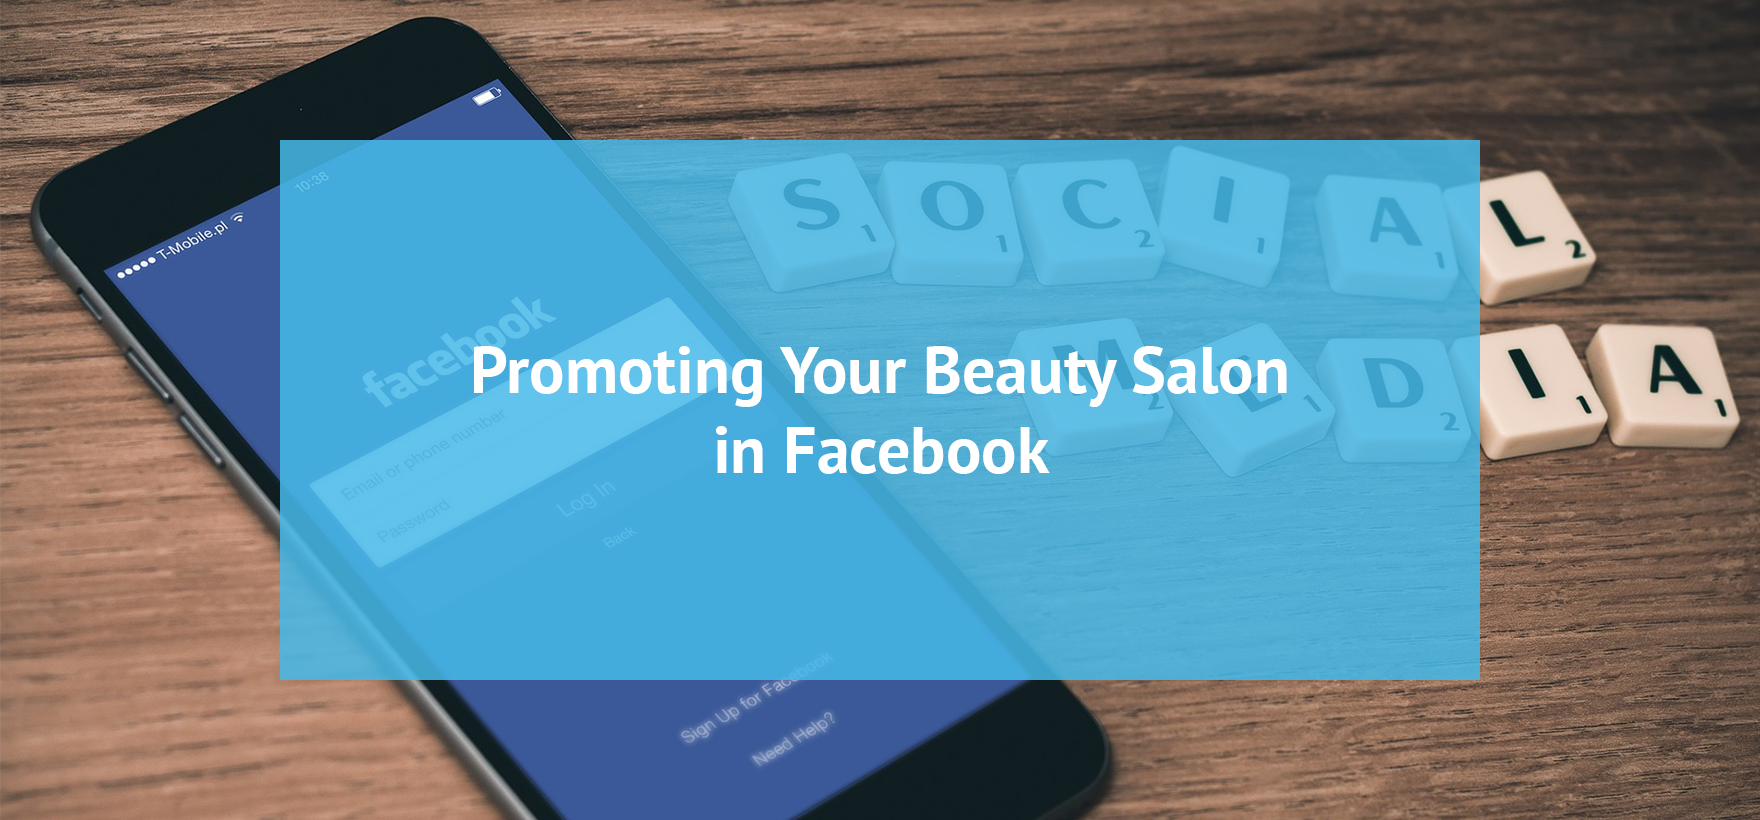 Promoting Your Beauty Salon on Facebook